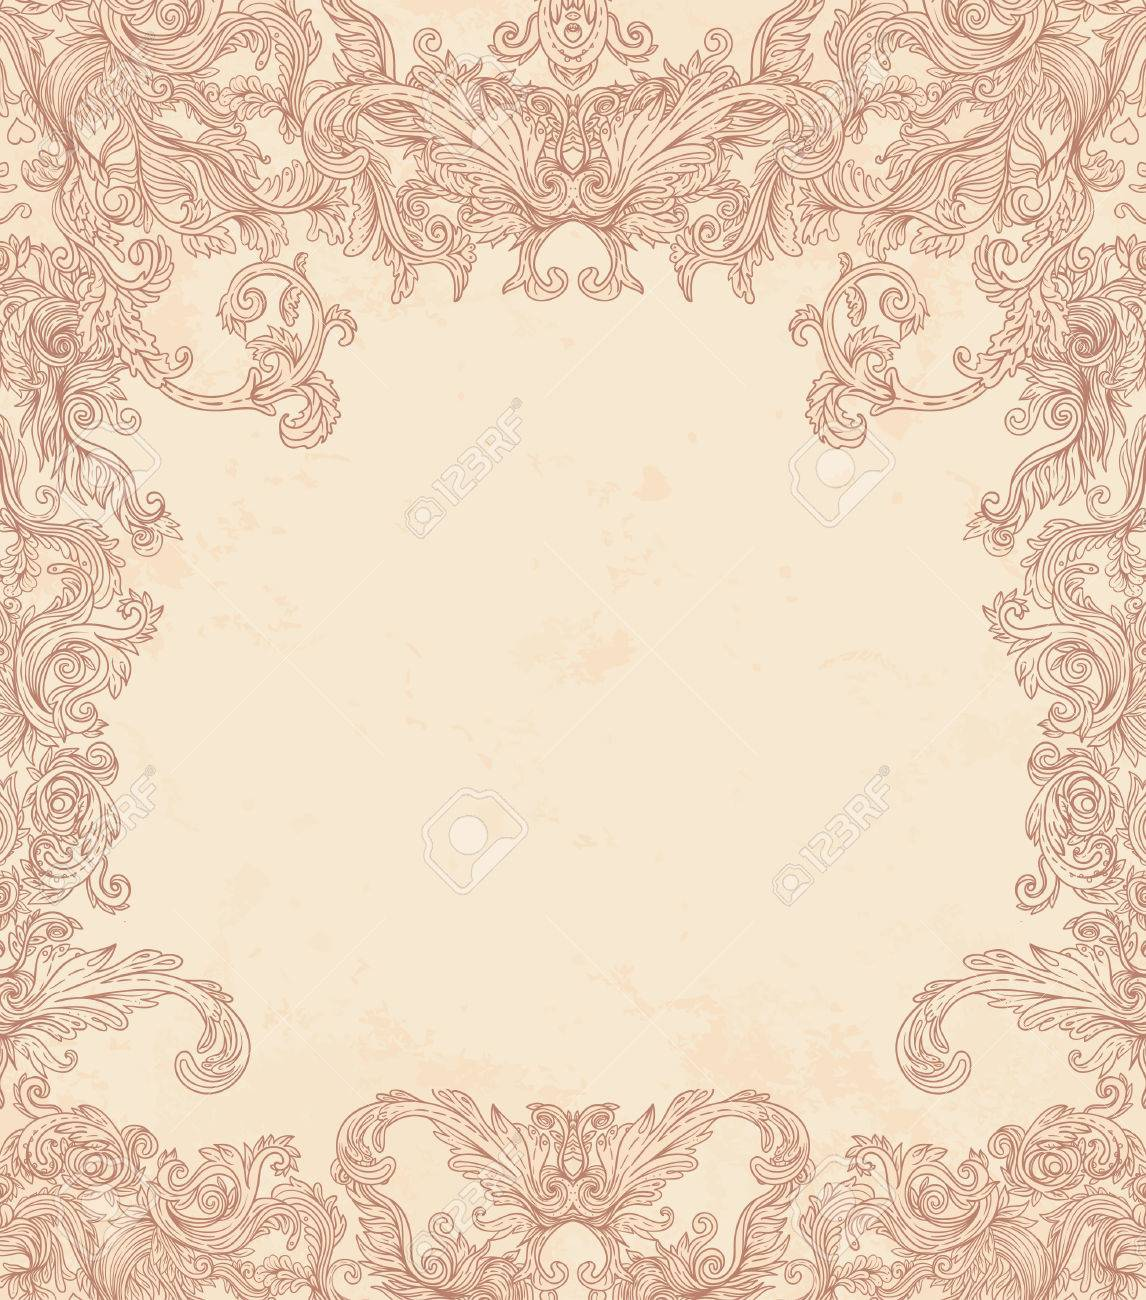 Vintage background ornate baroque pattern vector illustration stock - Vintage Background Ornate Baroque Pattern Vector Illustration Stock Vector 33592496